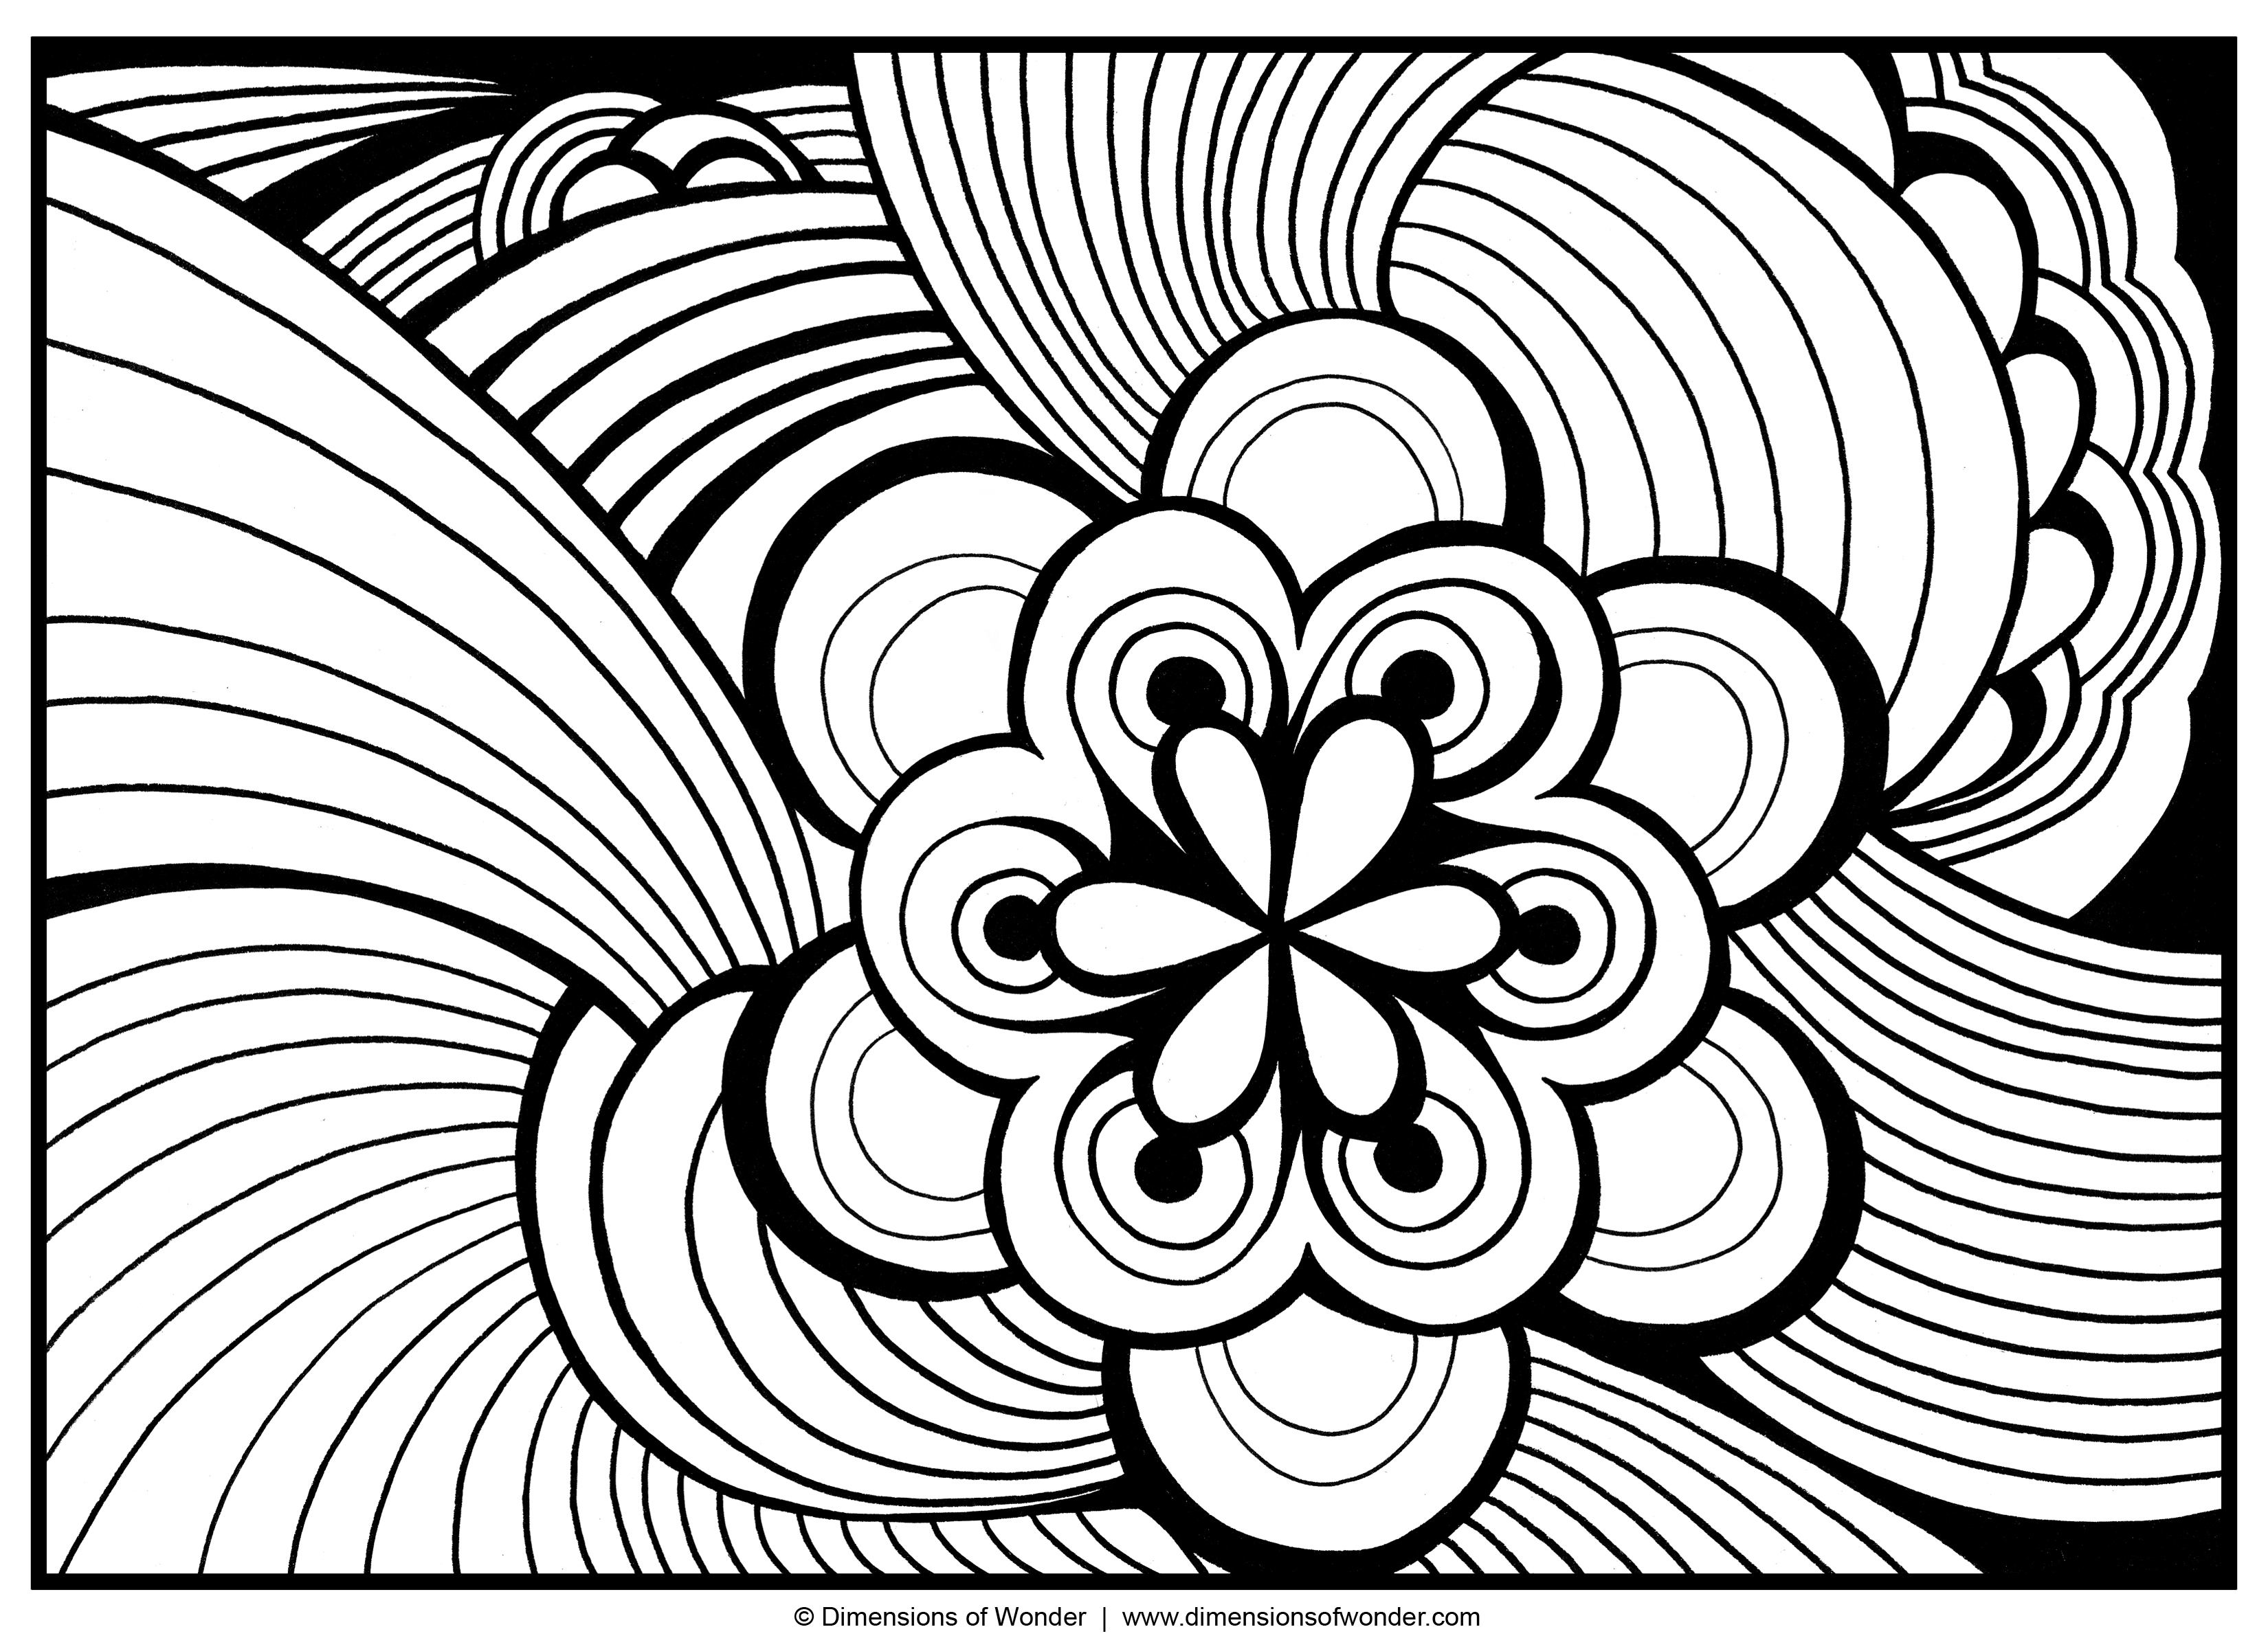 Abstract Coloring Pages - Abstract Coloring Pages for Adults to Print